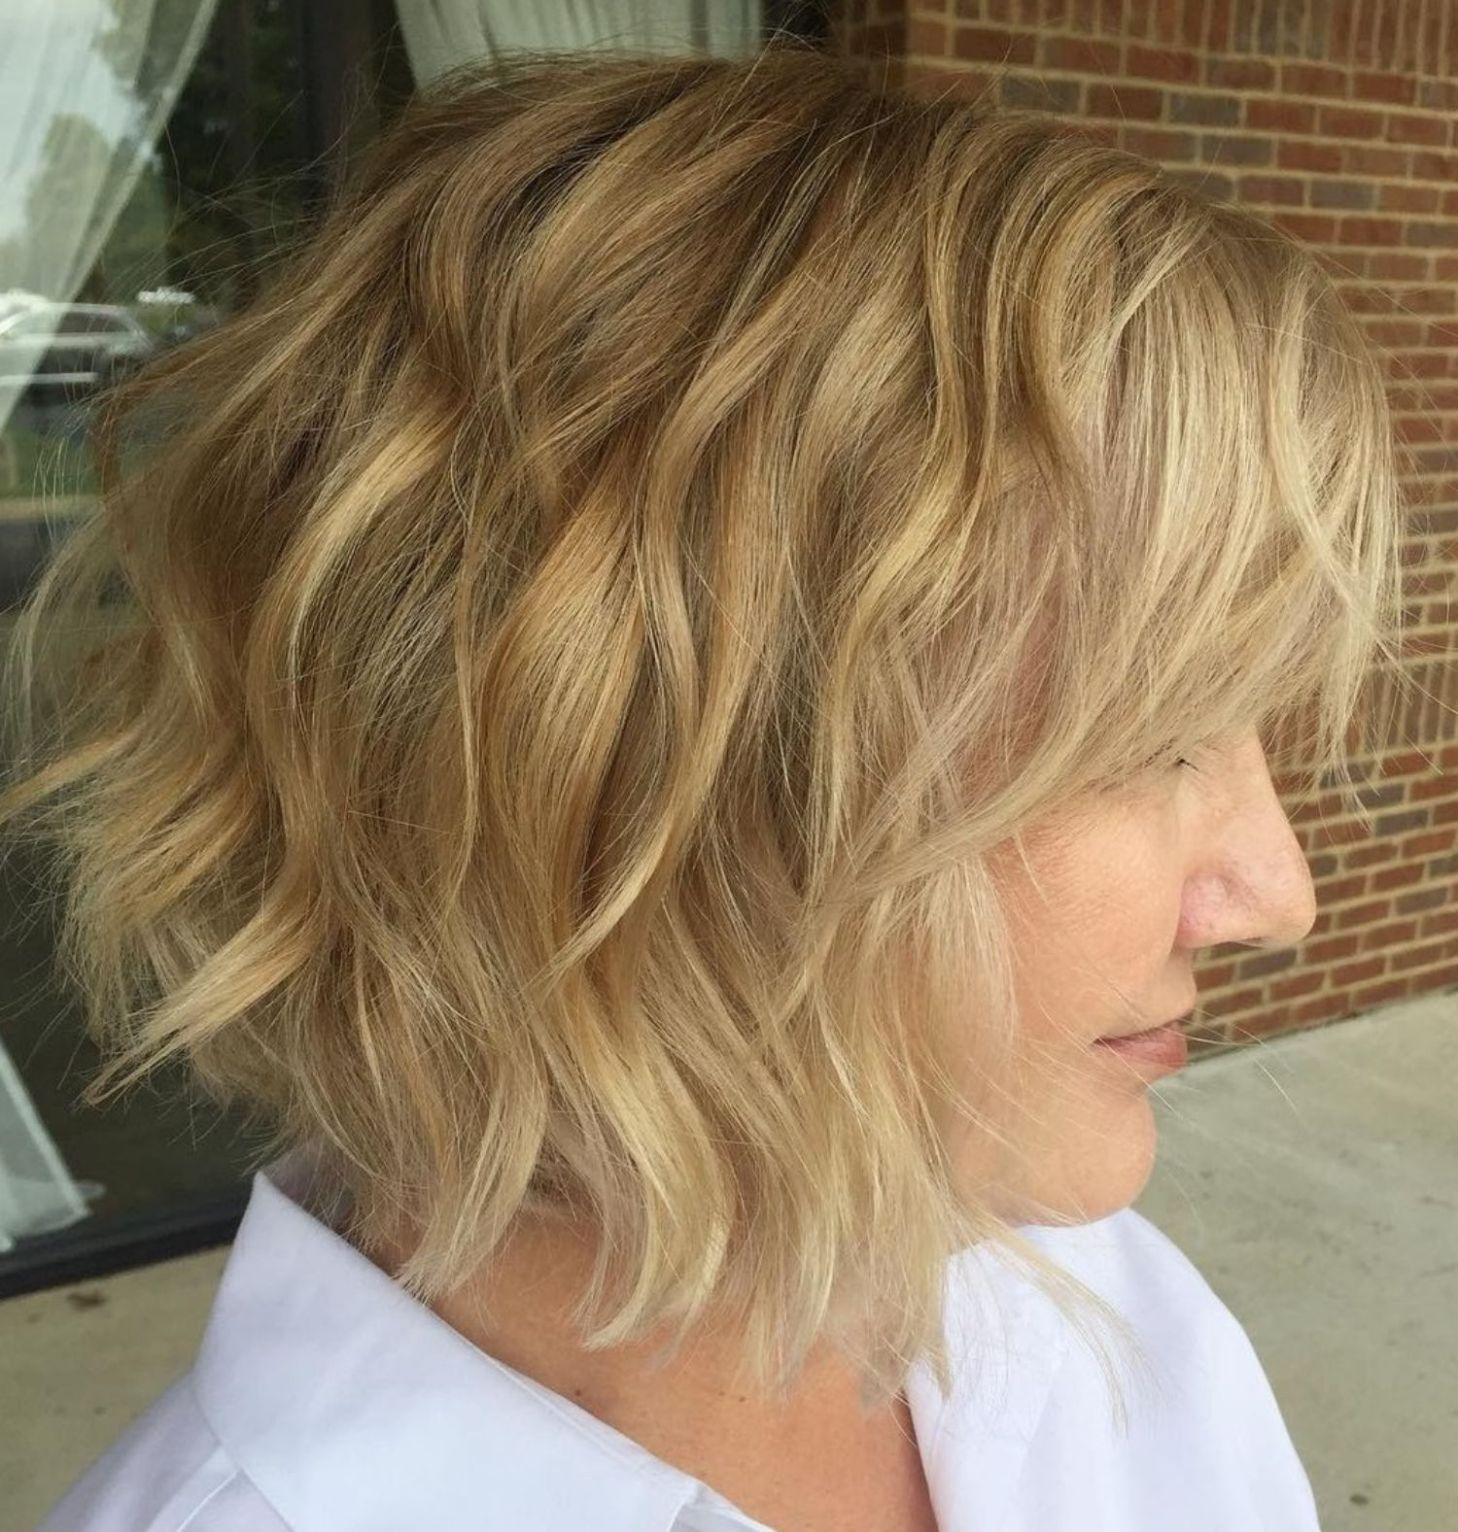 80 Best Modern Hairstyles And Haircuts For Women Over 50 Wavy Bob Hairstyles Bob Haircut For Girls Modern Hairstyles